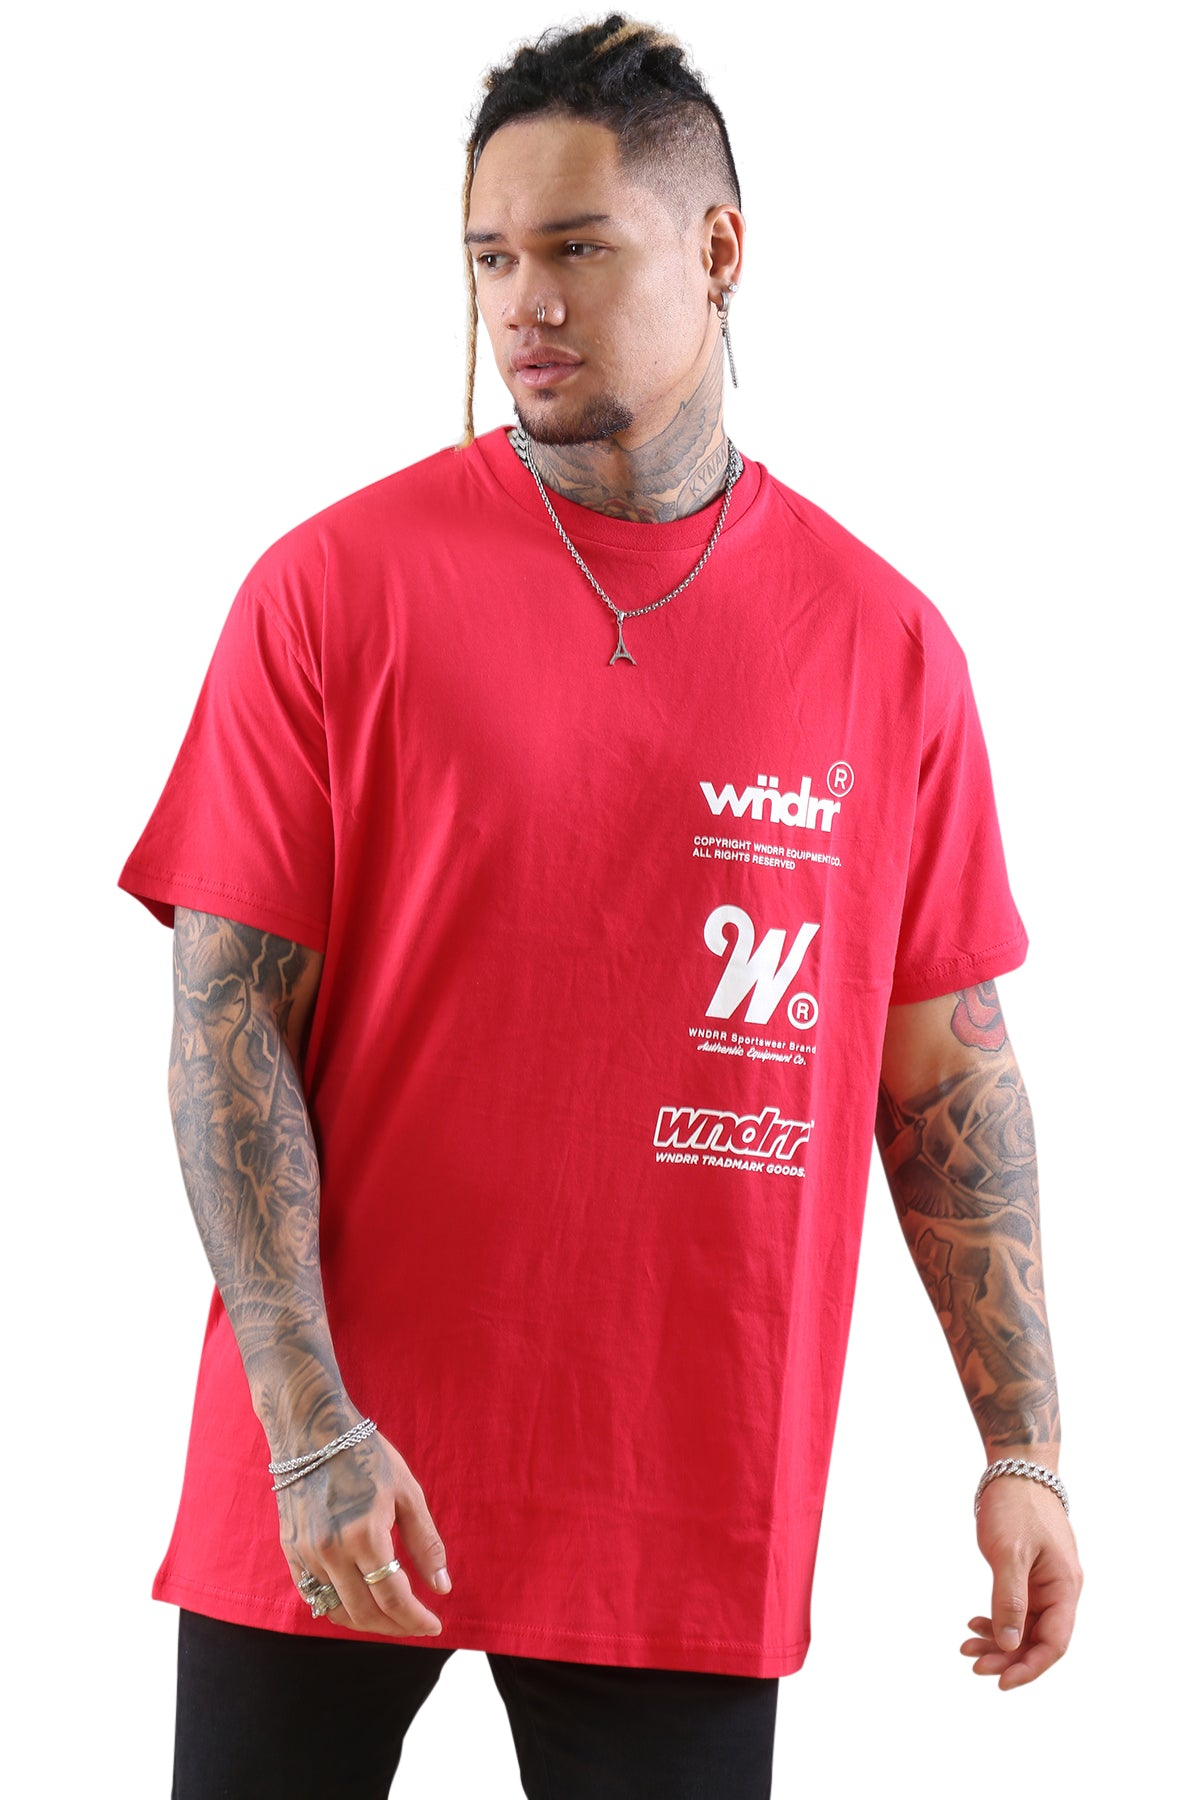 WNDRR Paradox Custom Fit Tee Red Front